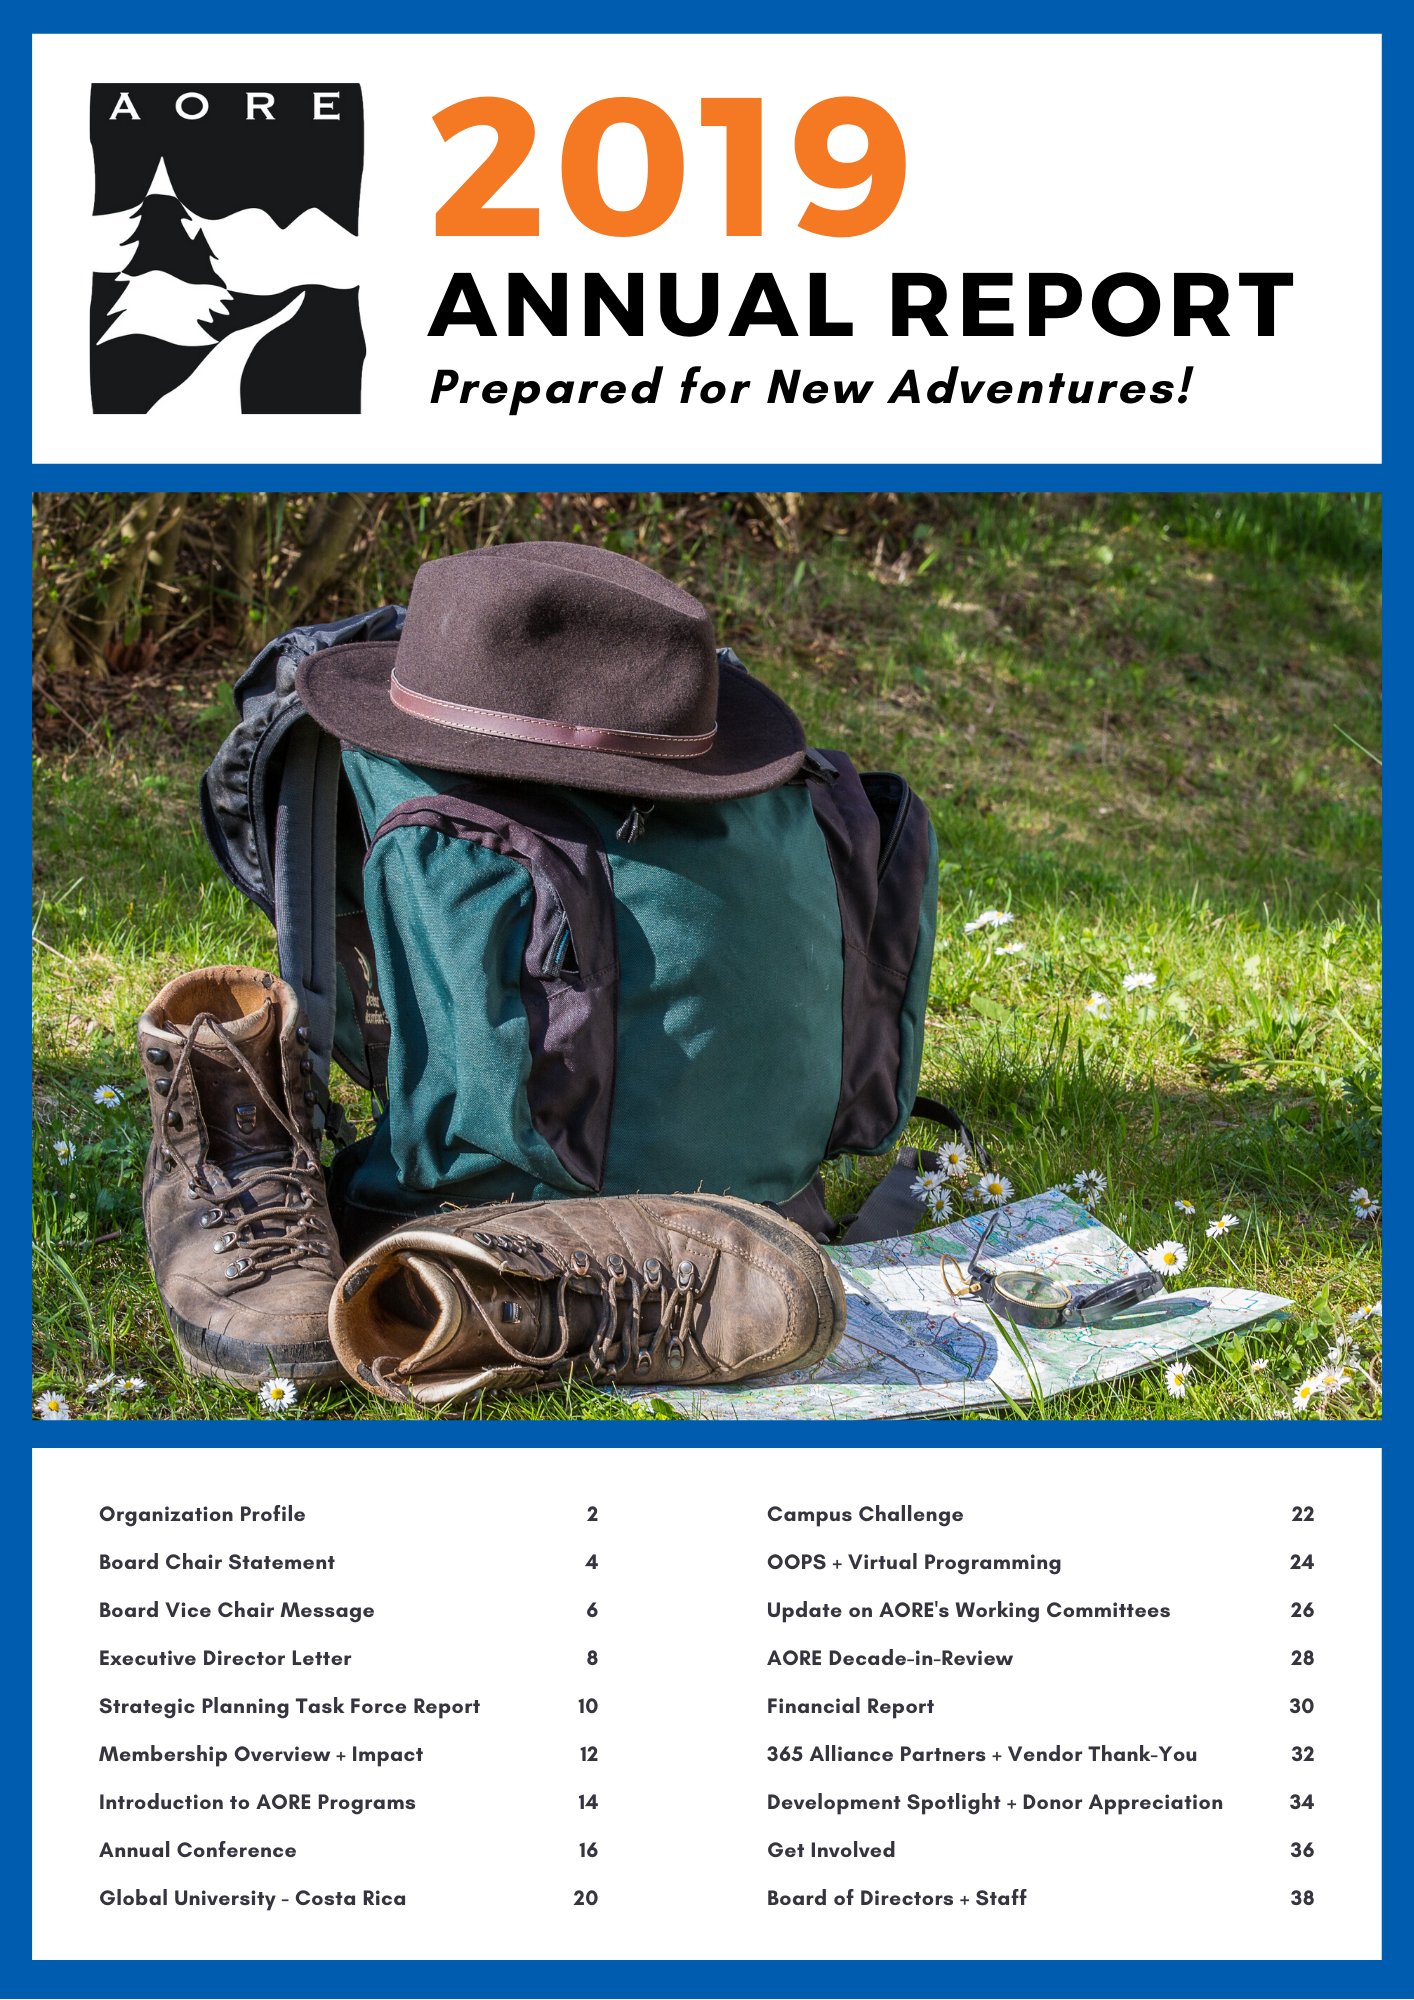 2019 ANNUAL REPORT_FINAL COPY - COVER IMAGE - CLICKABLE LINK